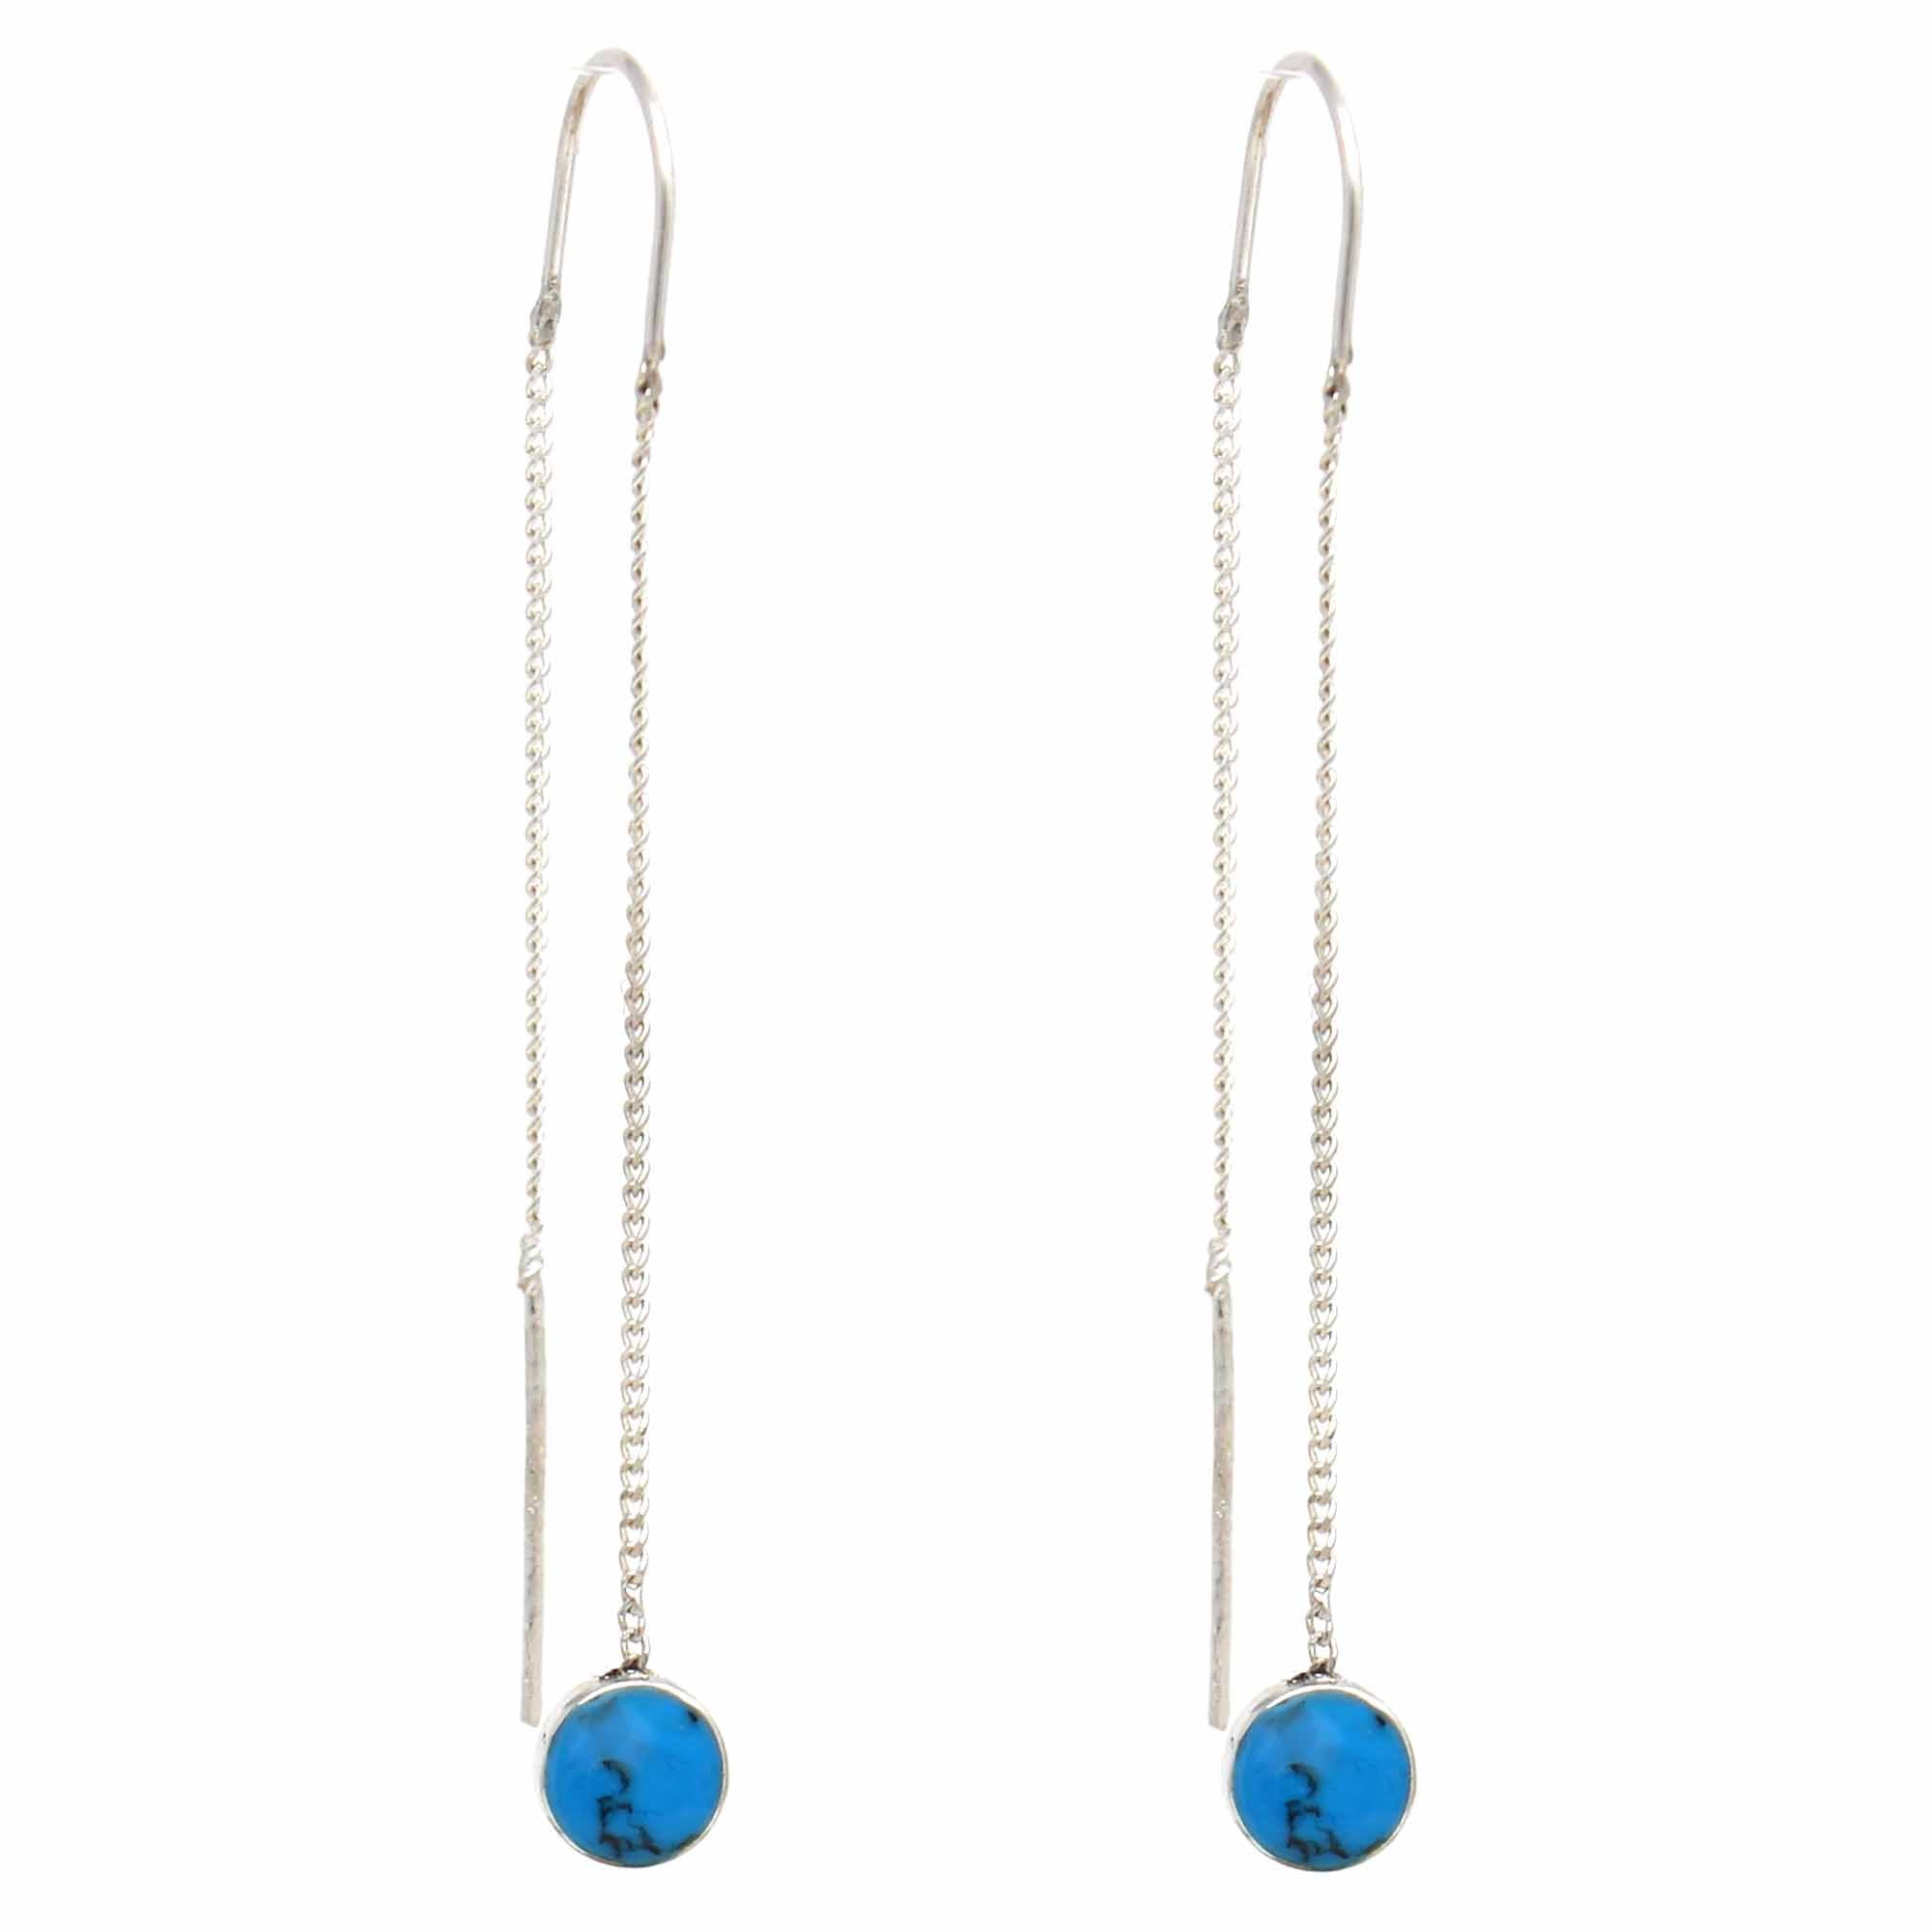 Threaded Chain Earring with Turquoise